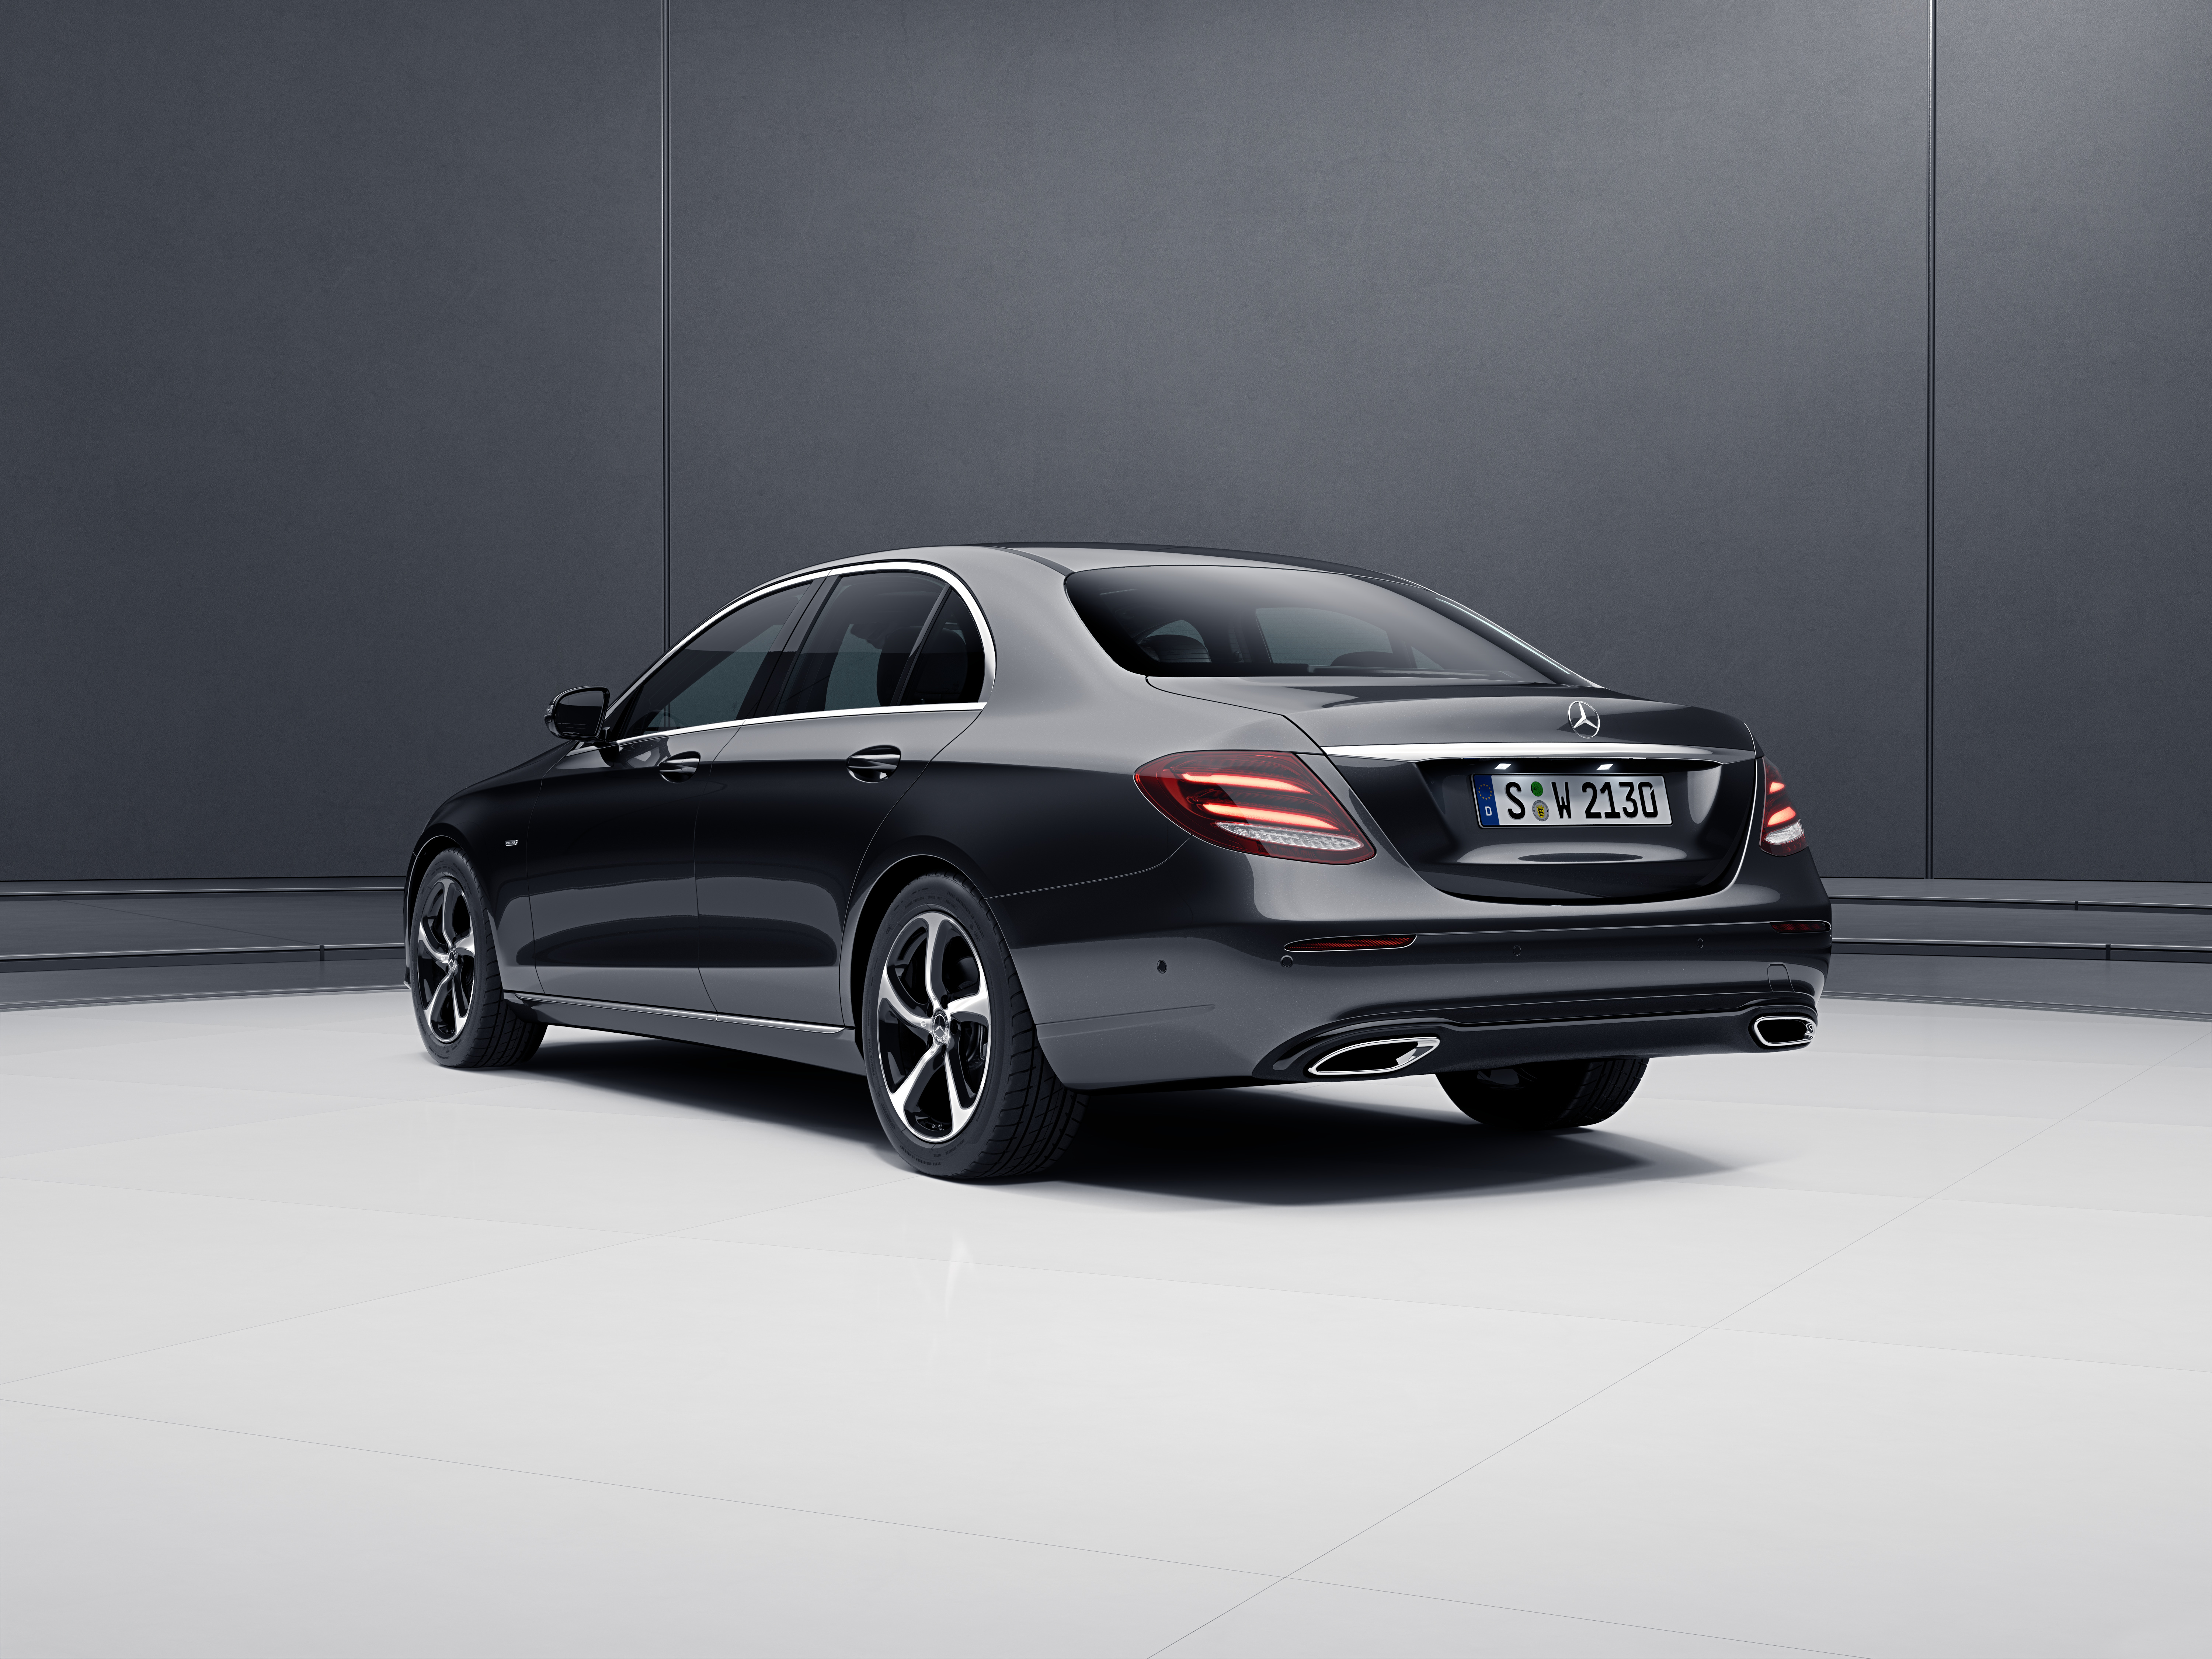 Mercedes-Benz Malaysia Launches New CKD E-Class Range, With